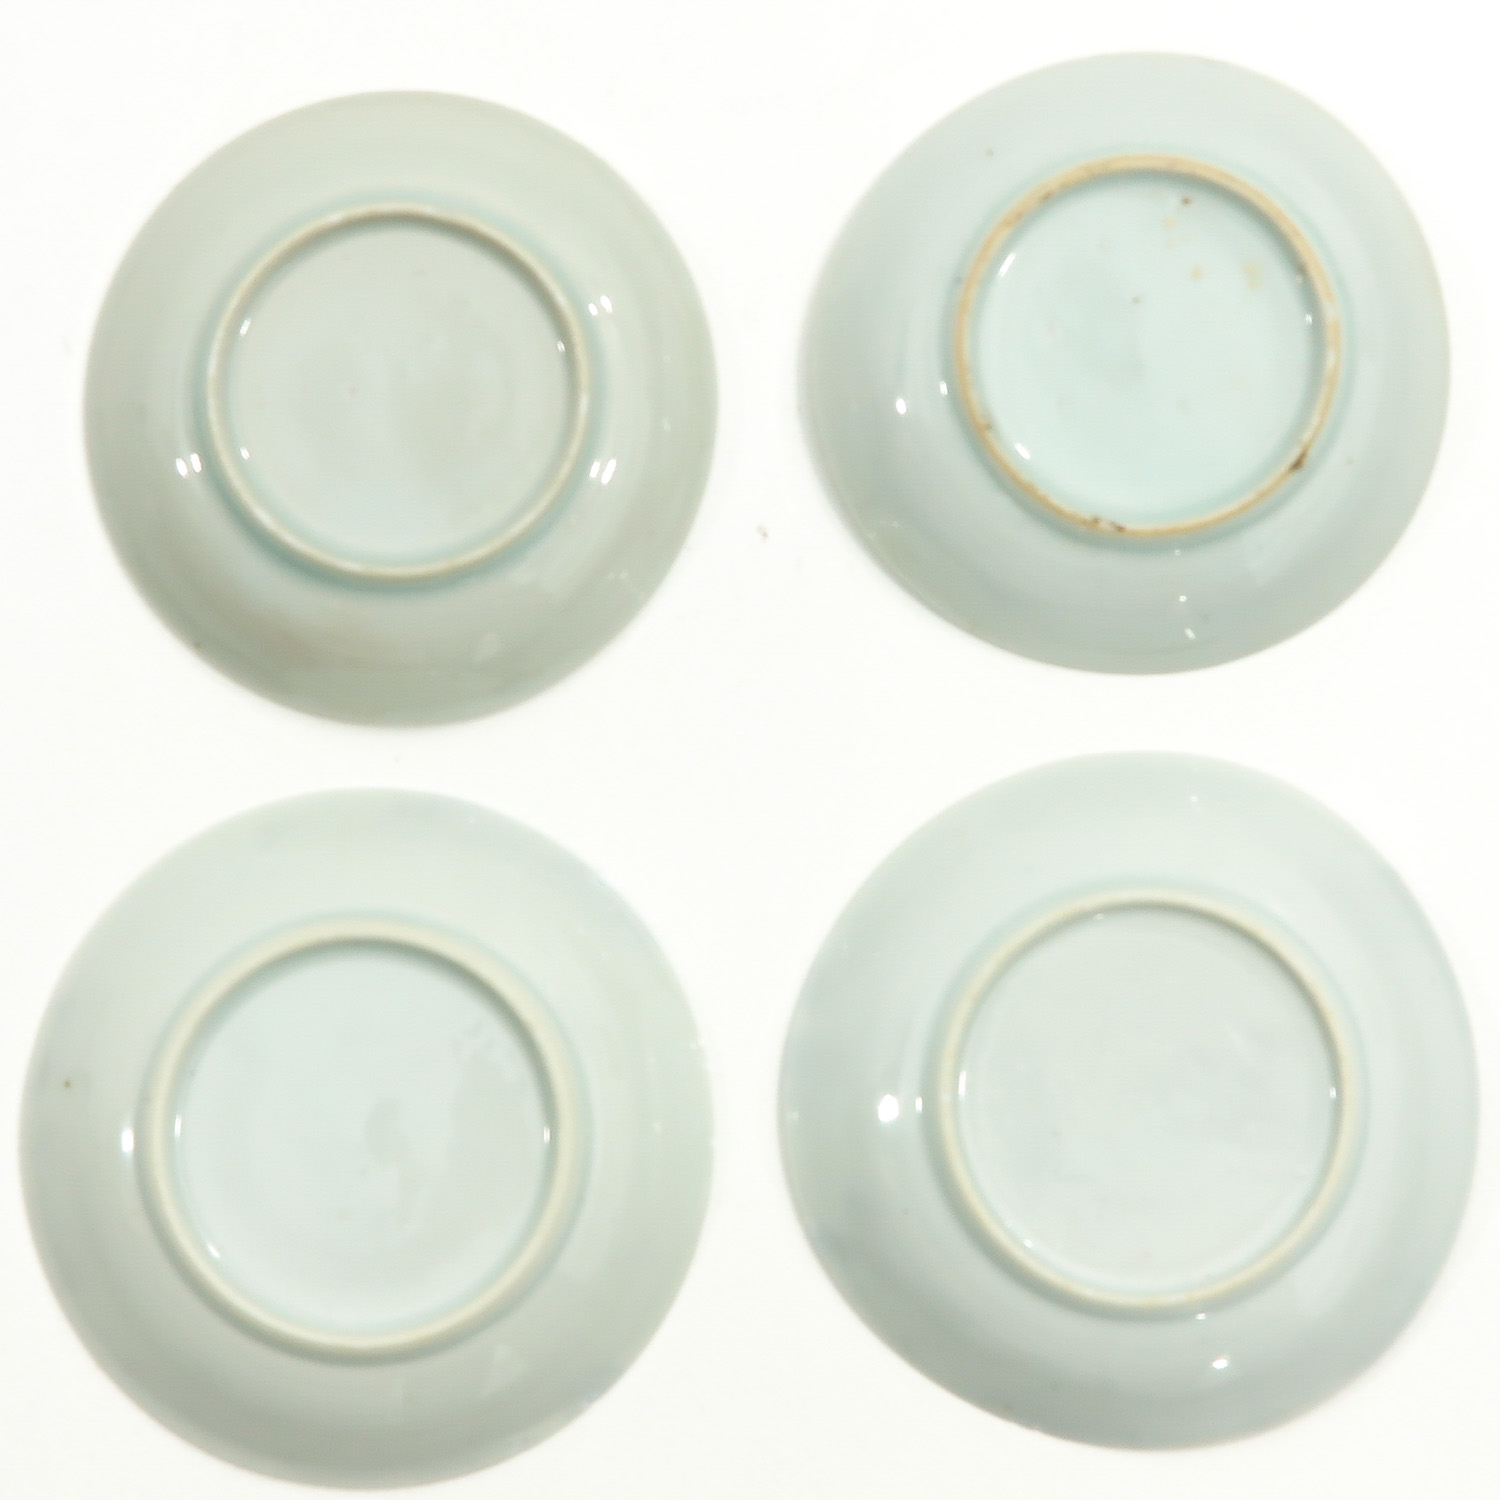 A Collection of 11 Small Plates - Image 8 of 10